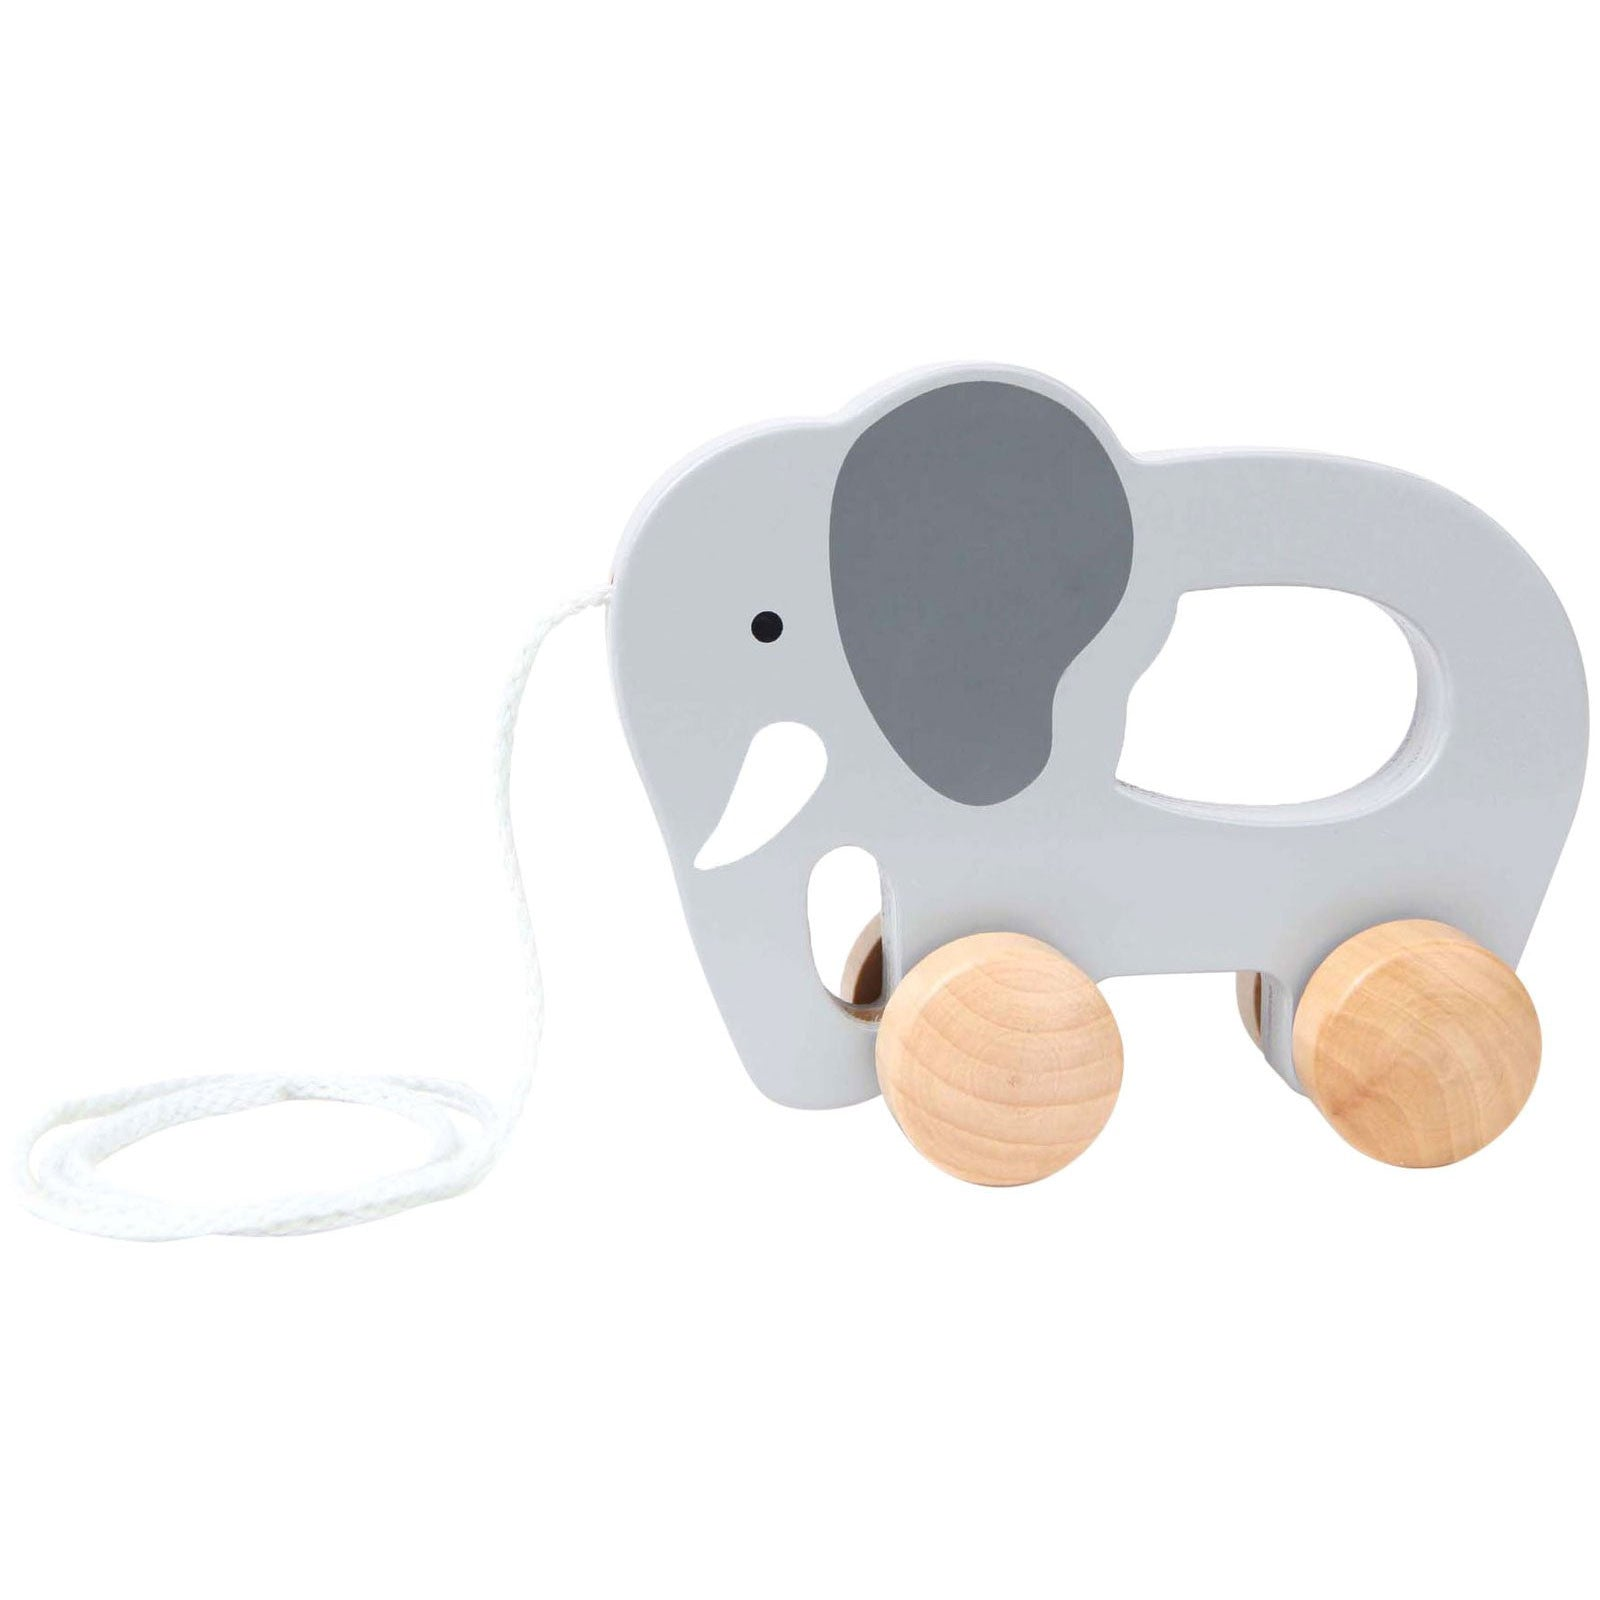 Hape Push and Pull Toy  Elephant - Hape - Little Earth Nest - 5